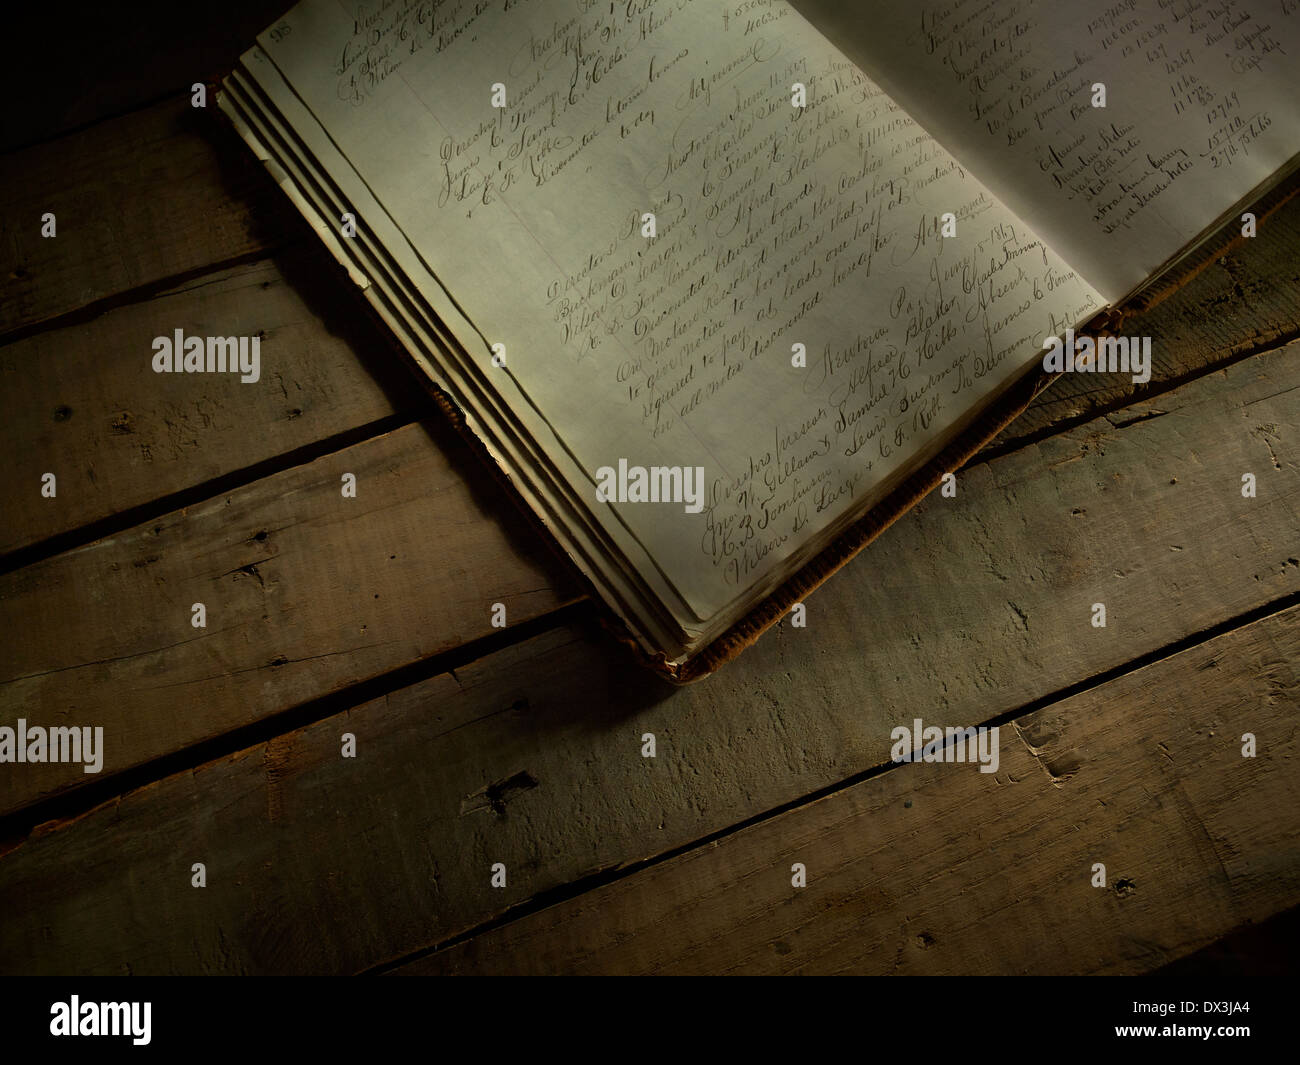 Old Hand Written Journal Diary - Stock Image